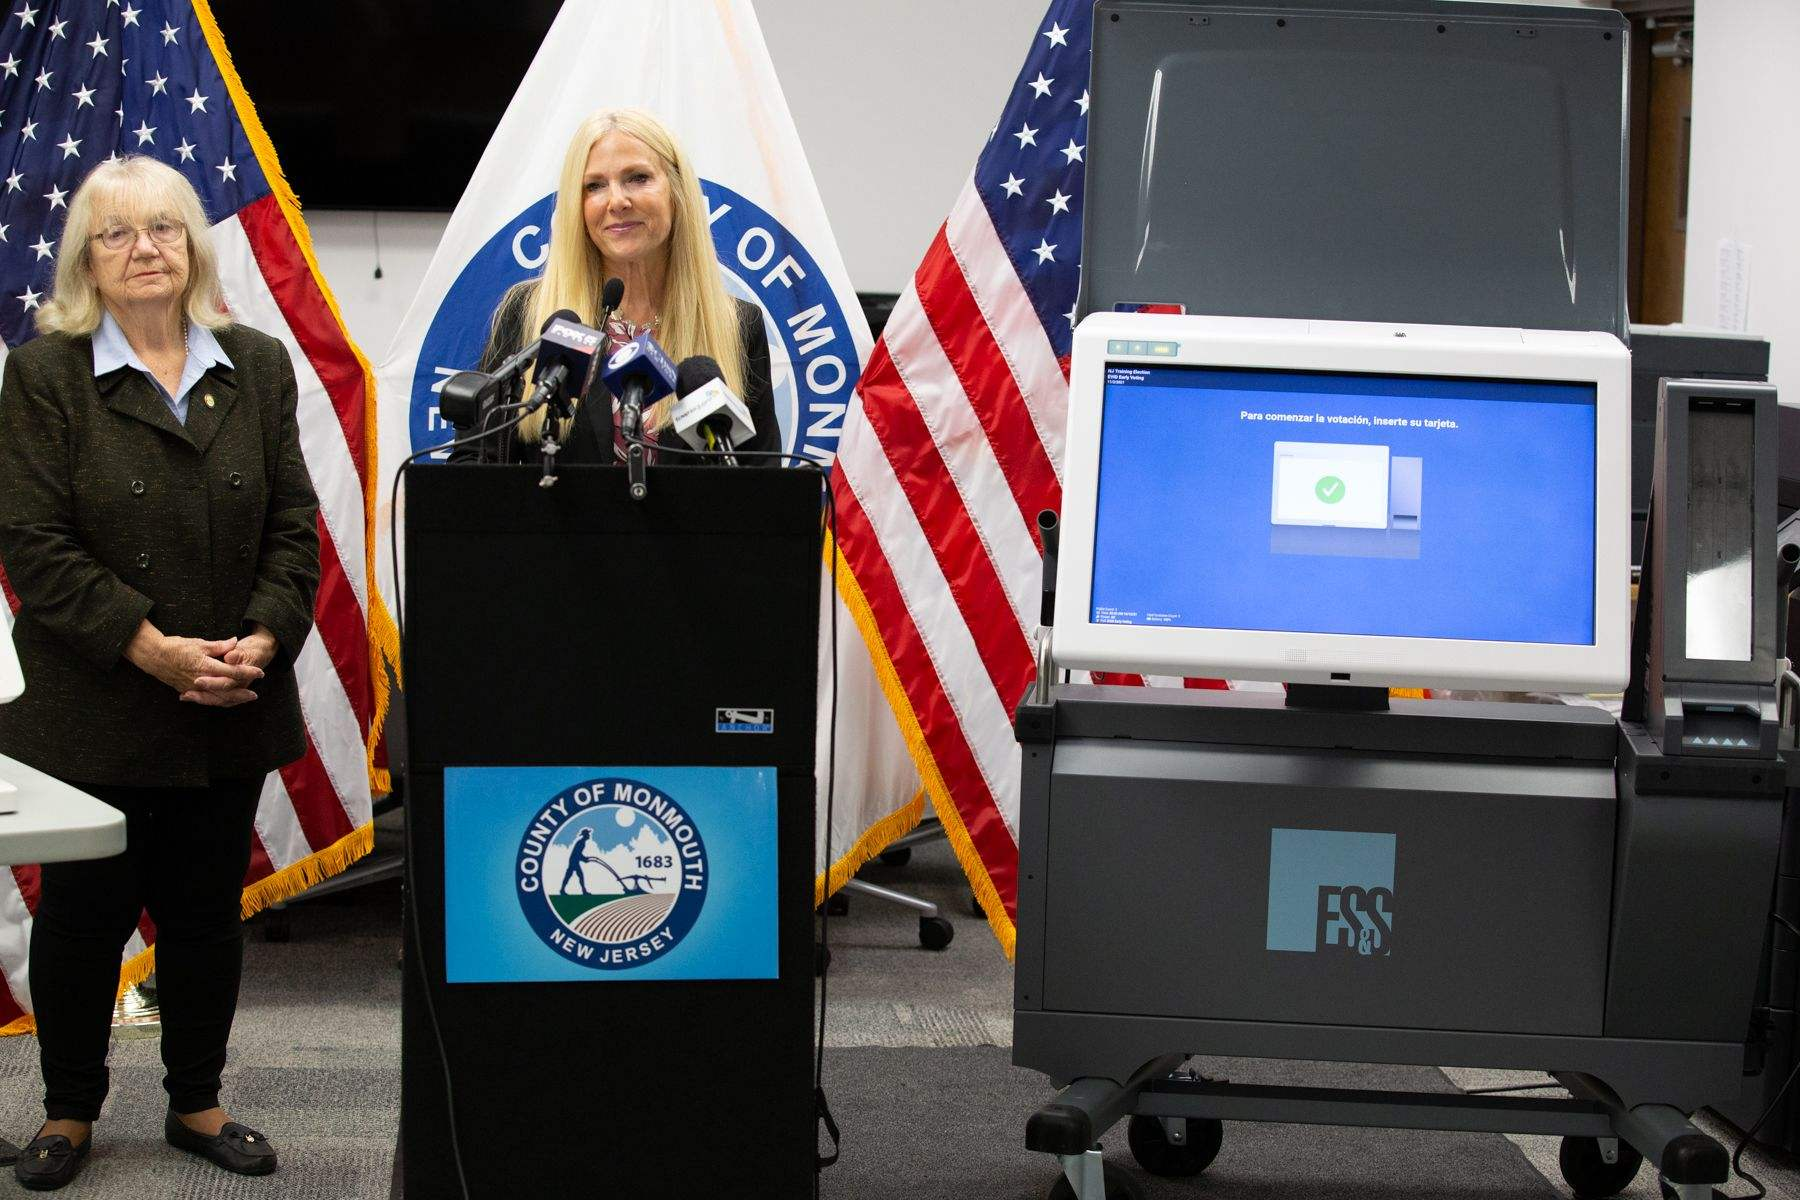 featured image for: <center>MONMOUTH COUNTY ELECTION OFFICIALS ADVISE VOTERS OF NEW EARLY IN PERSON VOTING OPTION WITH TUTORIAL OF NEW ELECTRONIC POLL BOOKS AND VOTING MACHINES FOR GENERAL ELECTION<center>